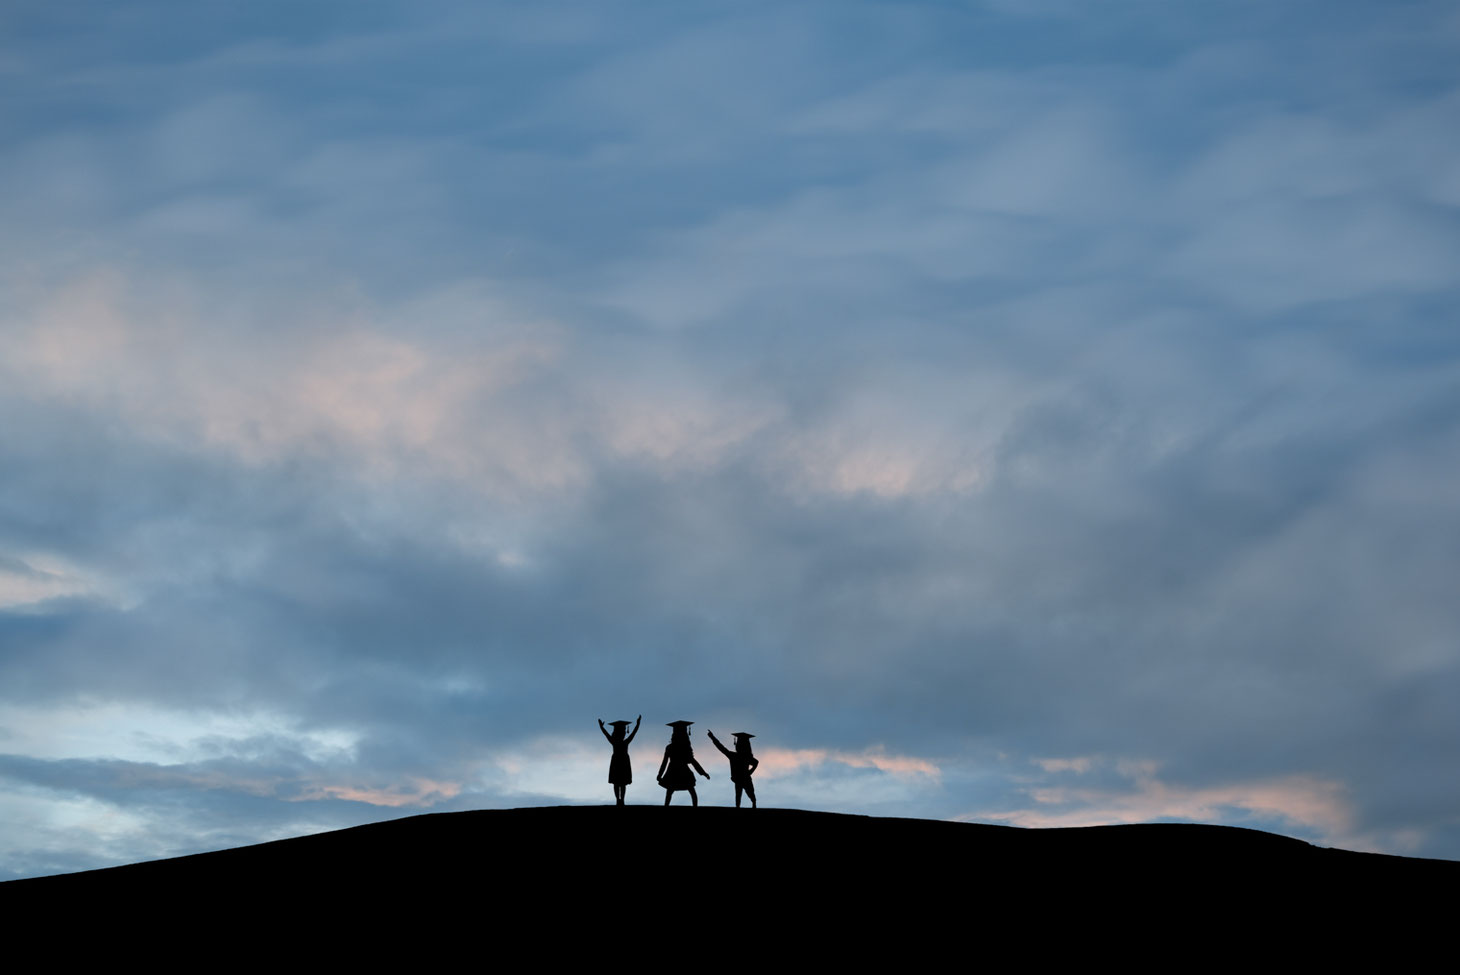 silhouettes of 3 girls in grad caps on a hill against a blue sky with bits of pink